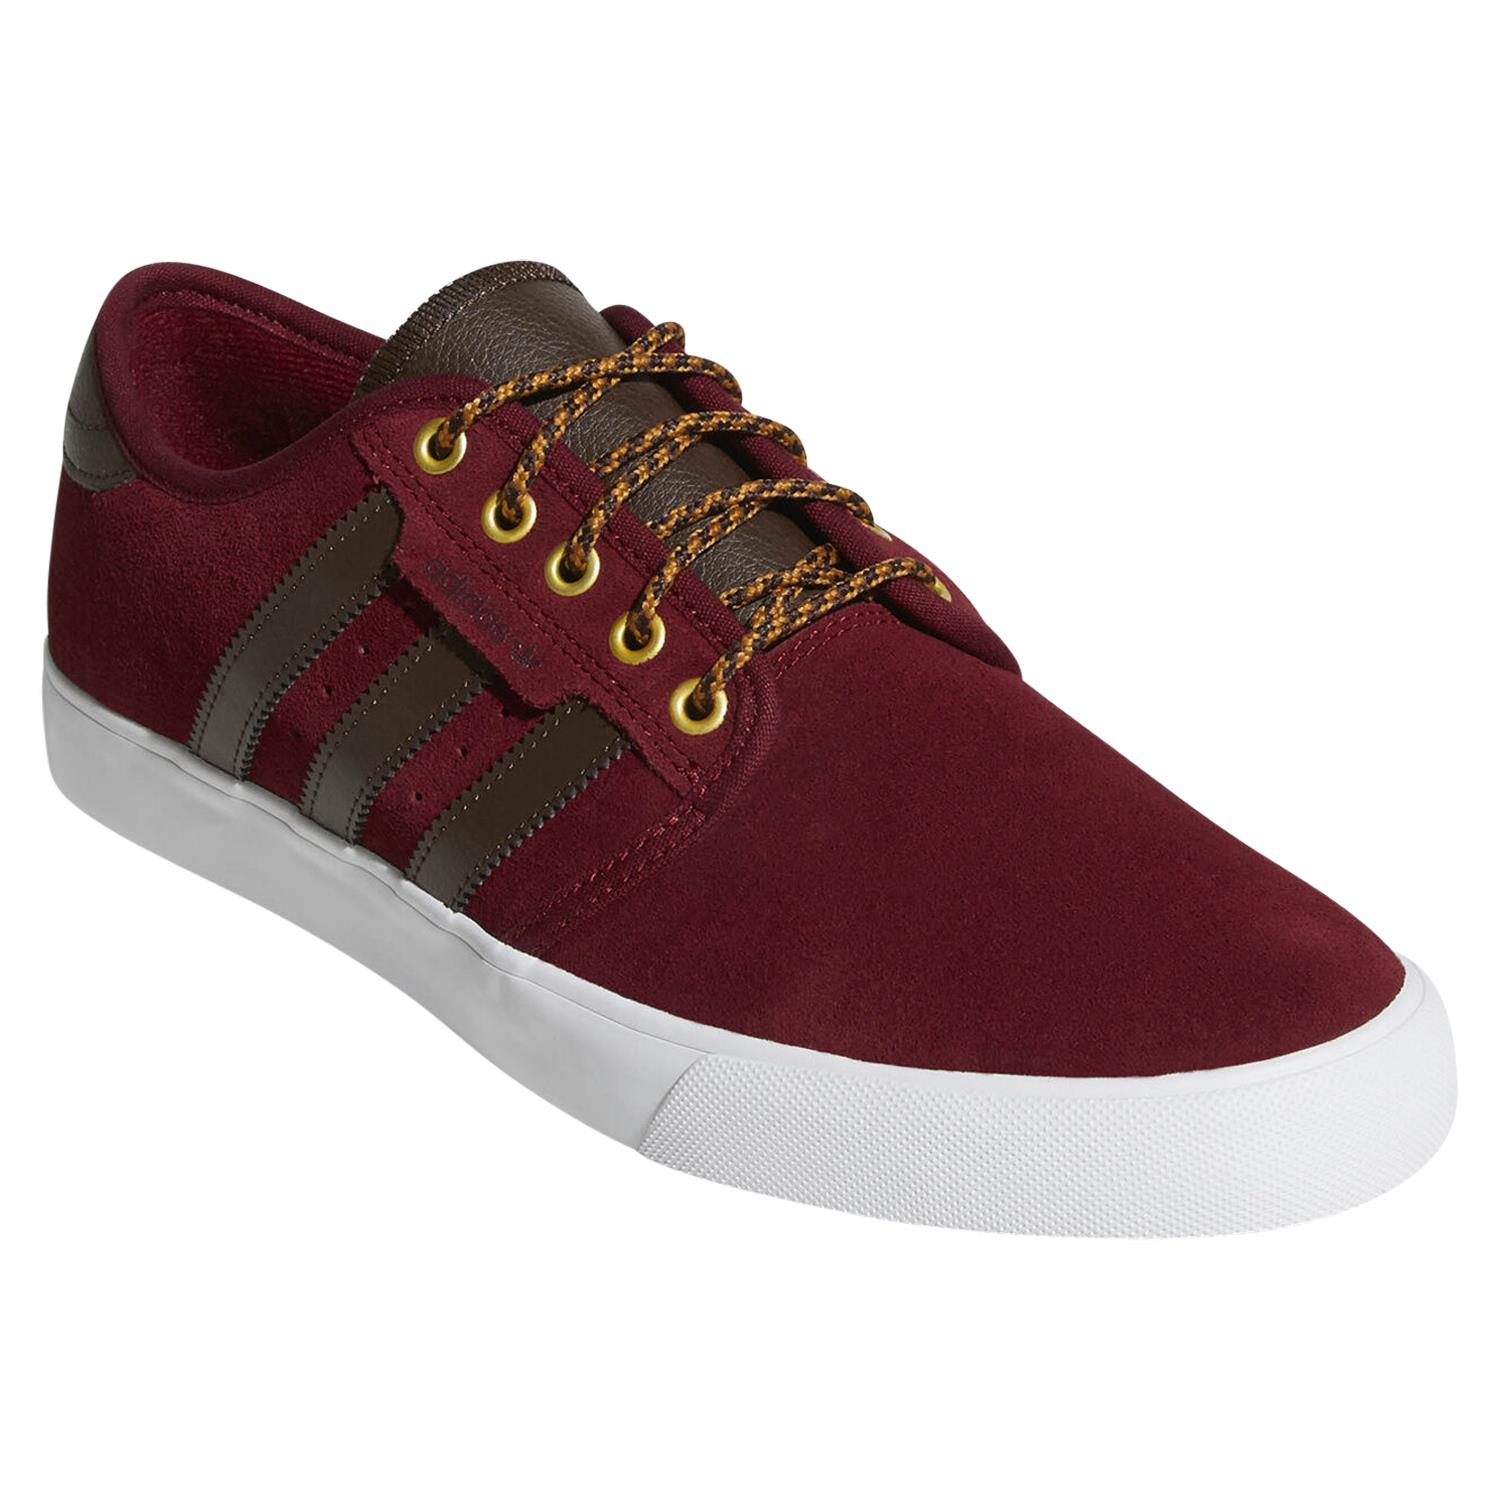 Details about adidas ORIGINALS SEELEY TRAINERS BURGUNDY SKATEBOARDING SHOES SNEAKERS KICKS NEW